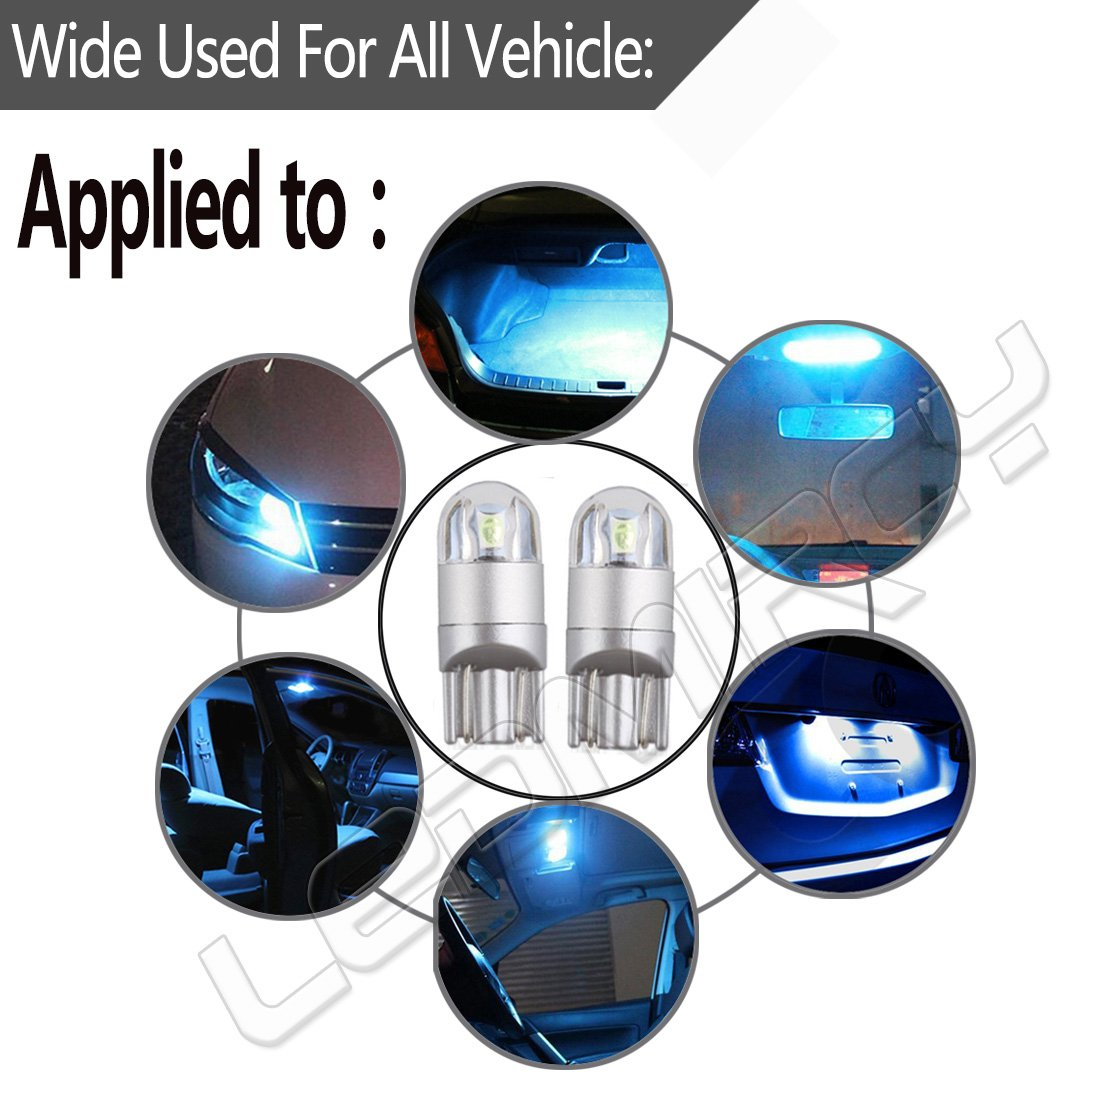 10PCS White W5W T10 LED Light Bulbs 501 921 194 168 LED Car Interior Exterior Lights 12V 3030 LED 3SMD License Plate Light Dome Map Reading Door Trunk Clearance Compact Wedge Side Dashboard Light